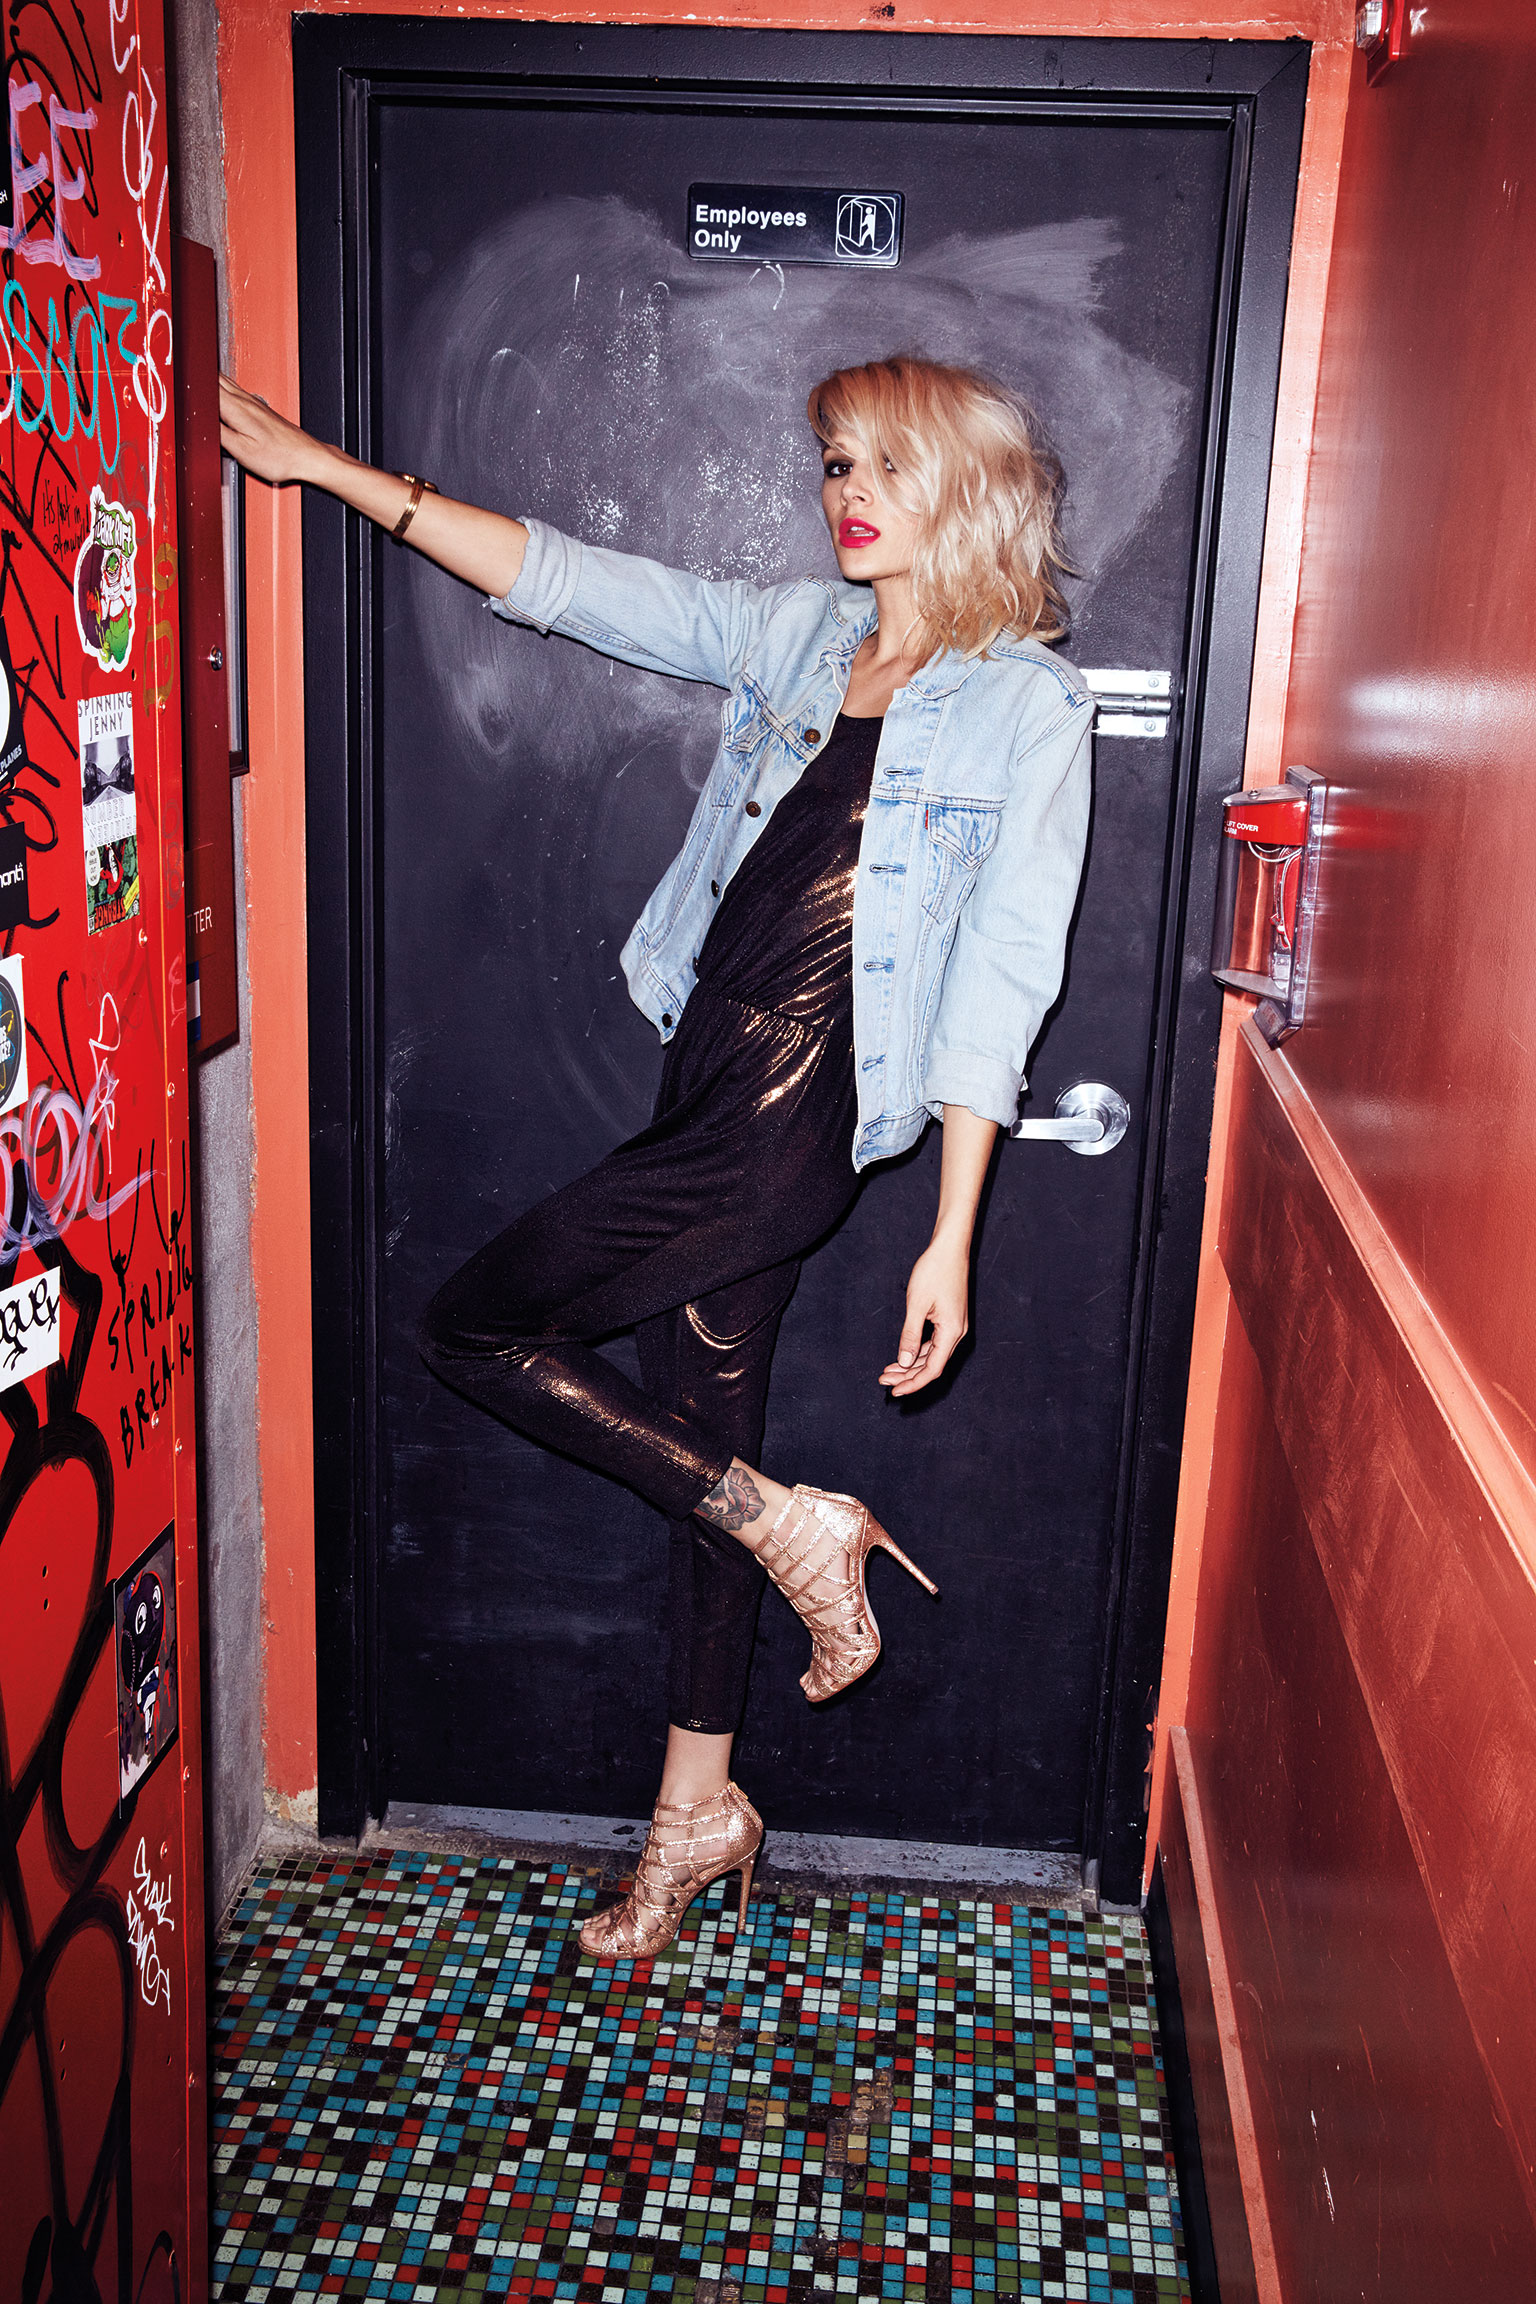 STEVE-MADDEN-SS15-CAMPAIGN-STYLED-BY-ANDREA-MESSIER-CUOMO-11.jpg